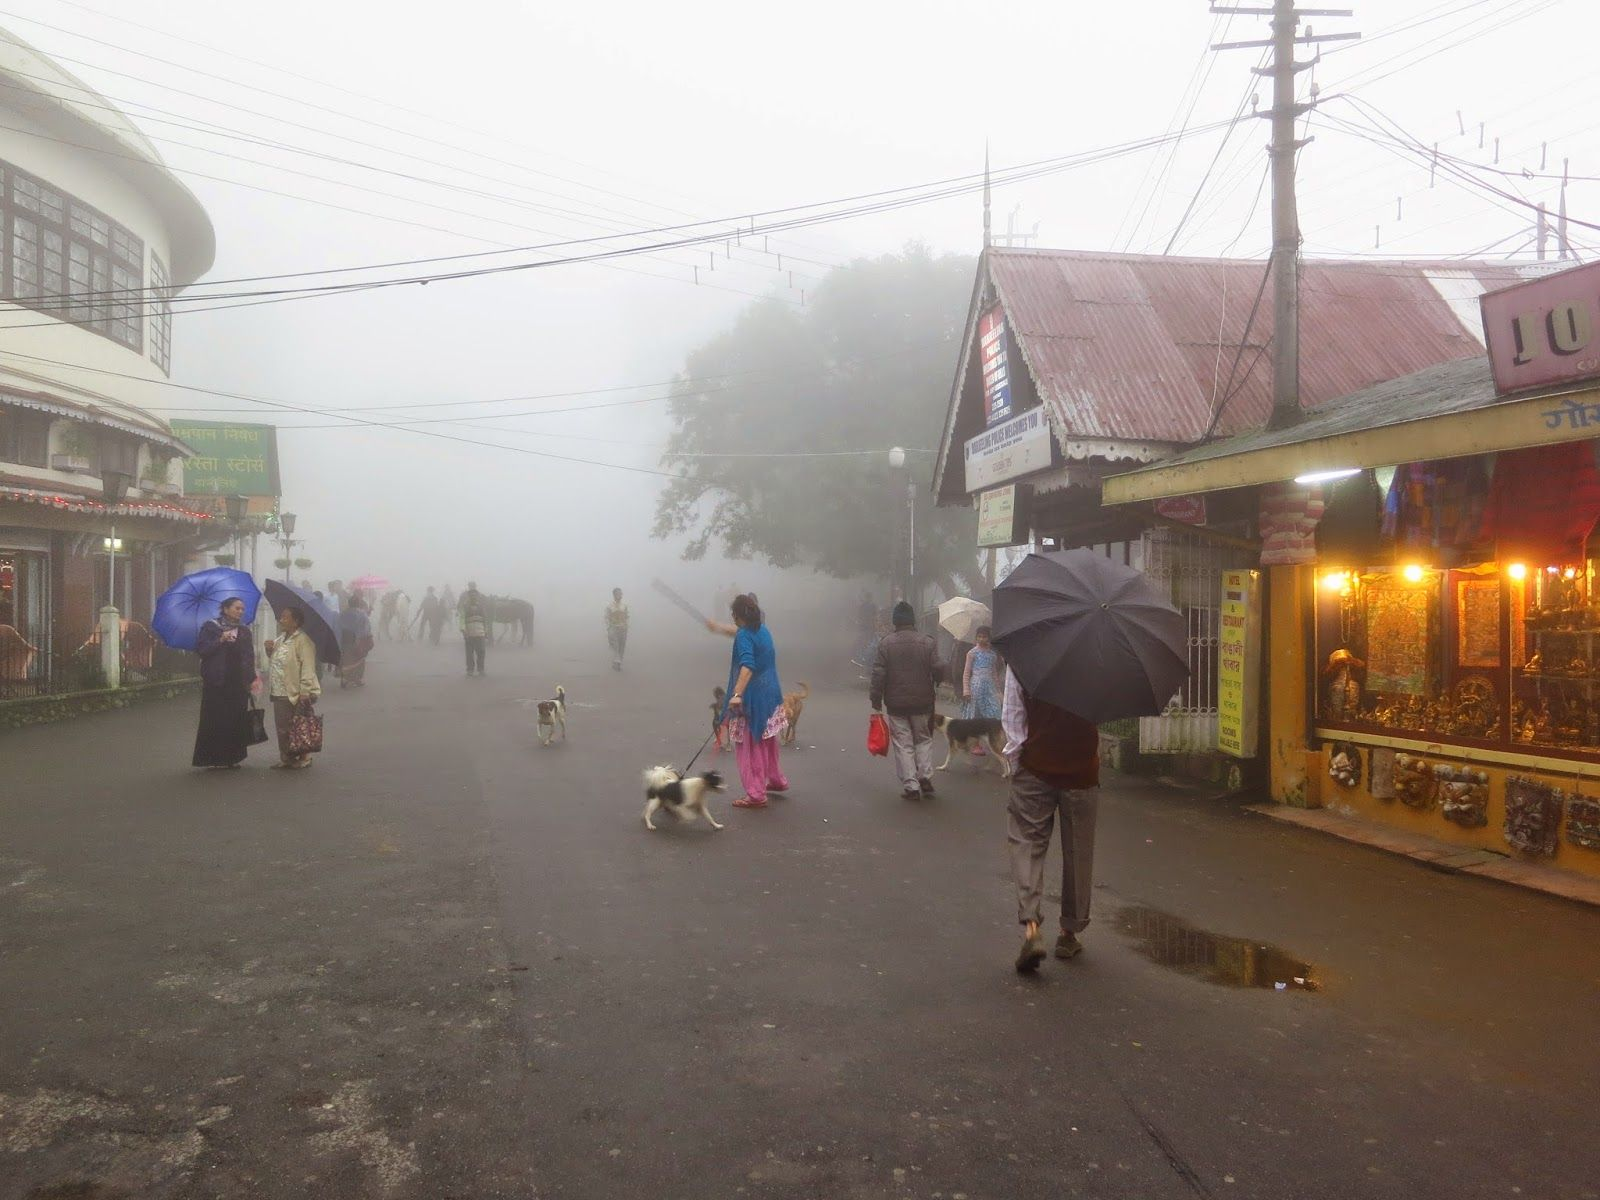 An foggy evening in Darjeeling. | Romantic places, Views, Foggy